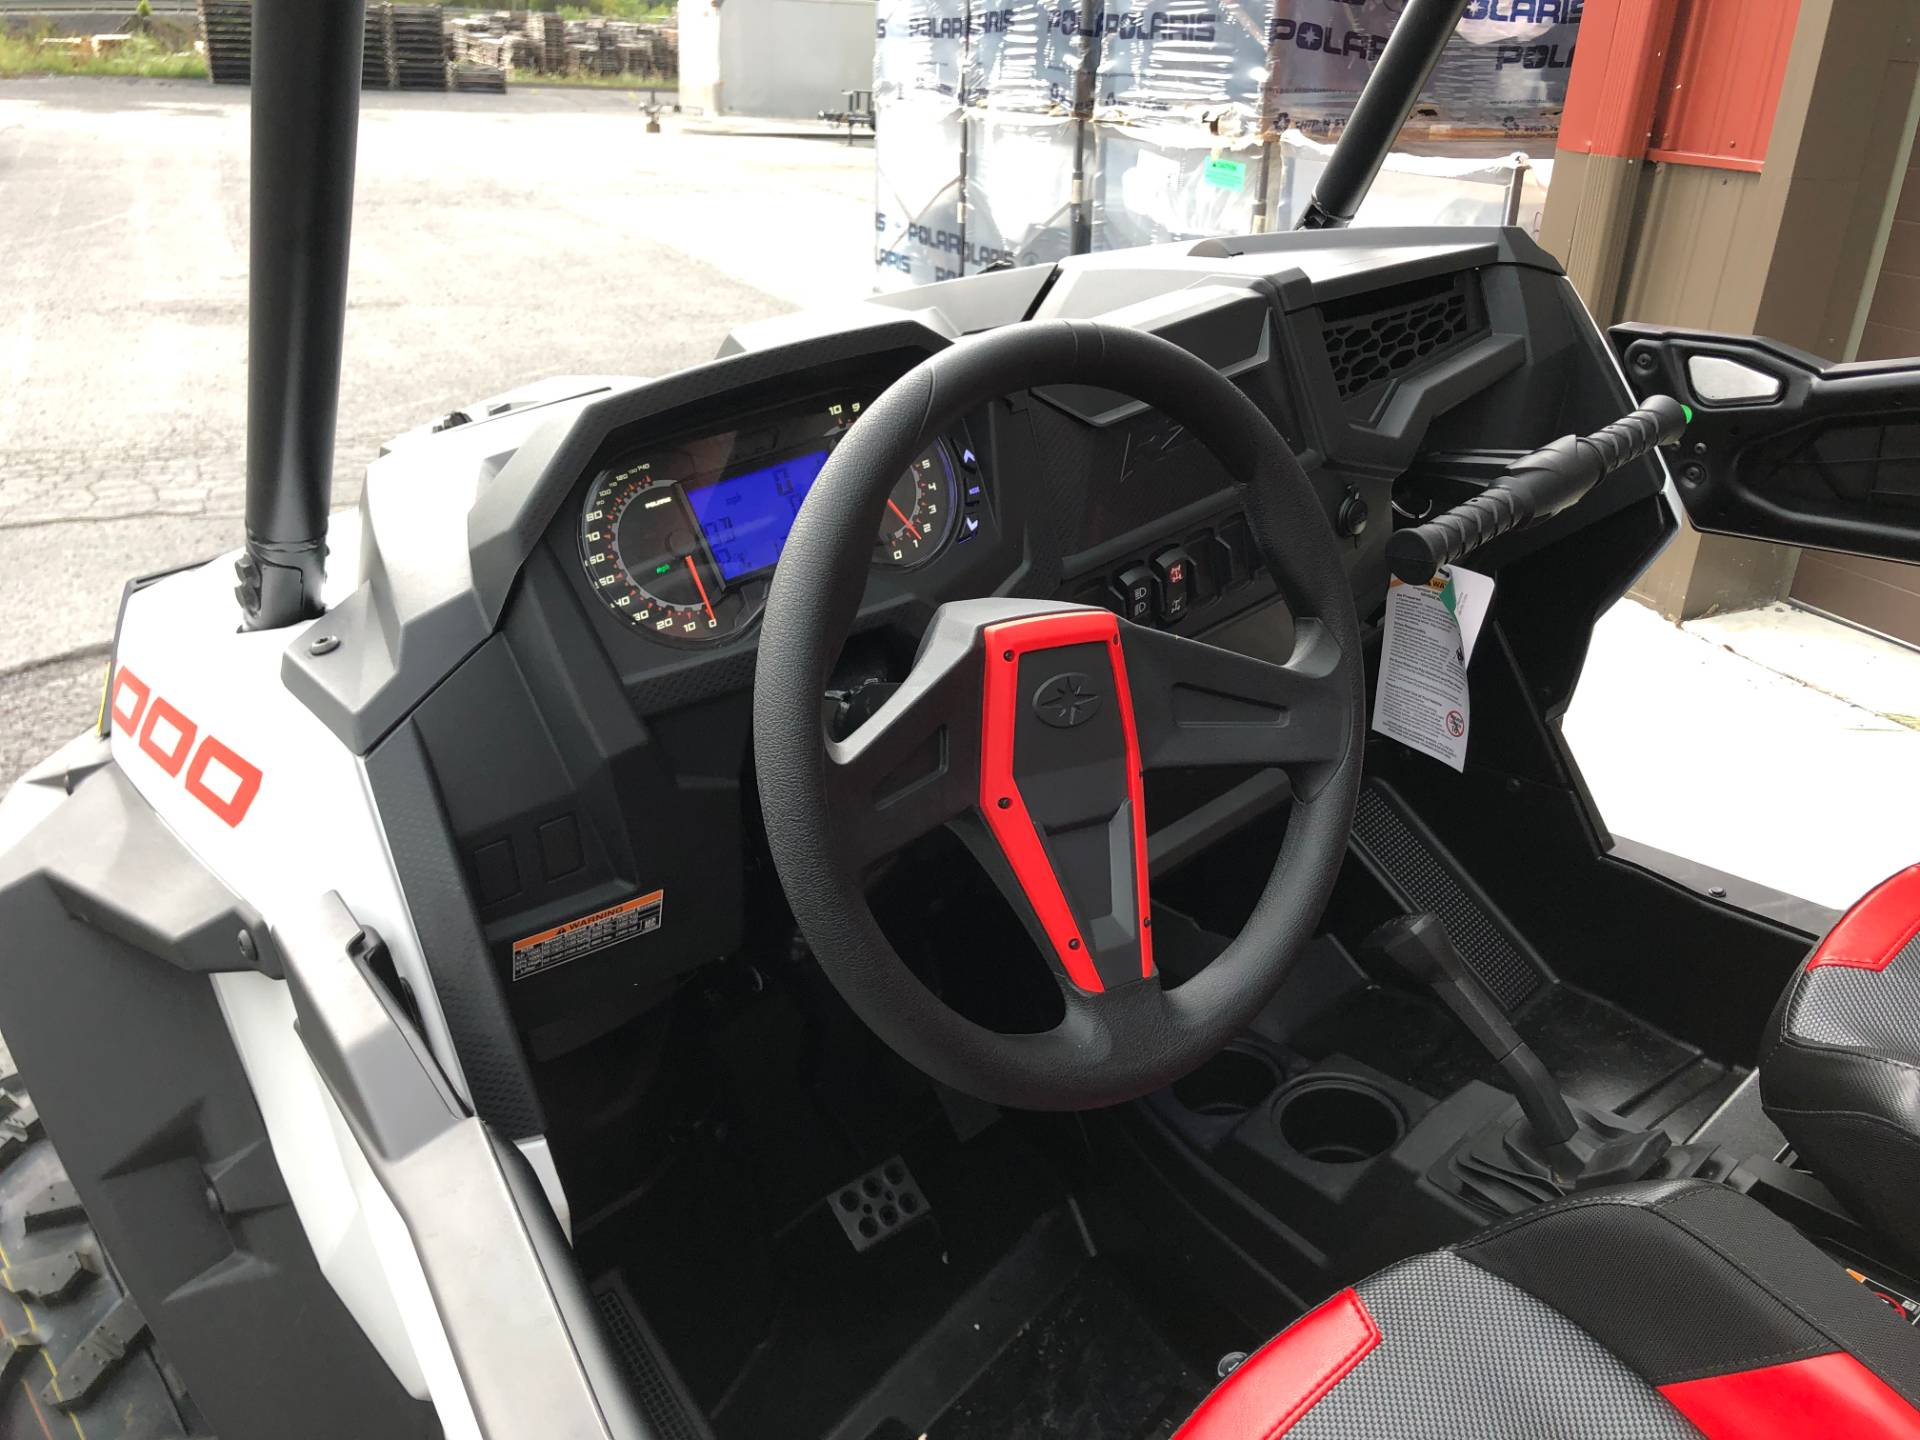 2020 Polaris RZR XP 1000 in Tyrone, Pennsylvania - Photo 6